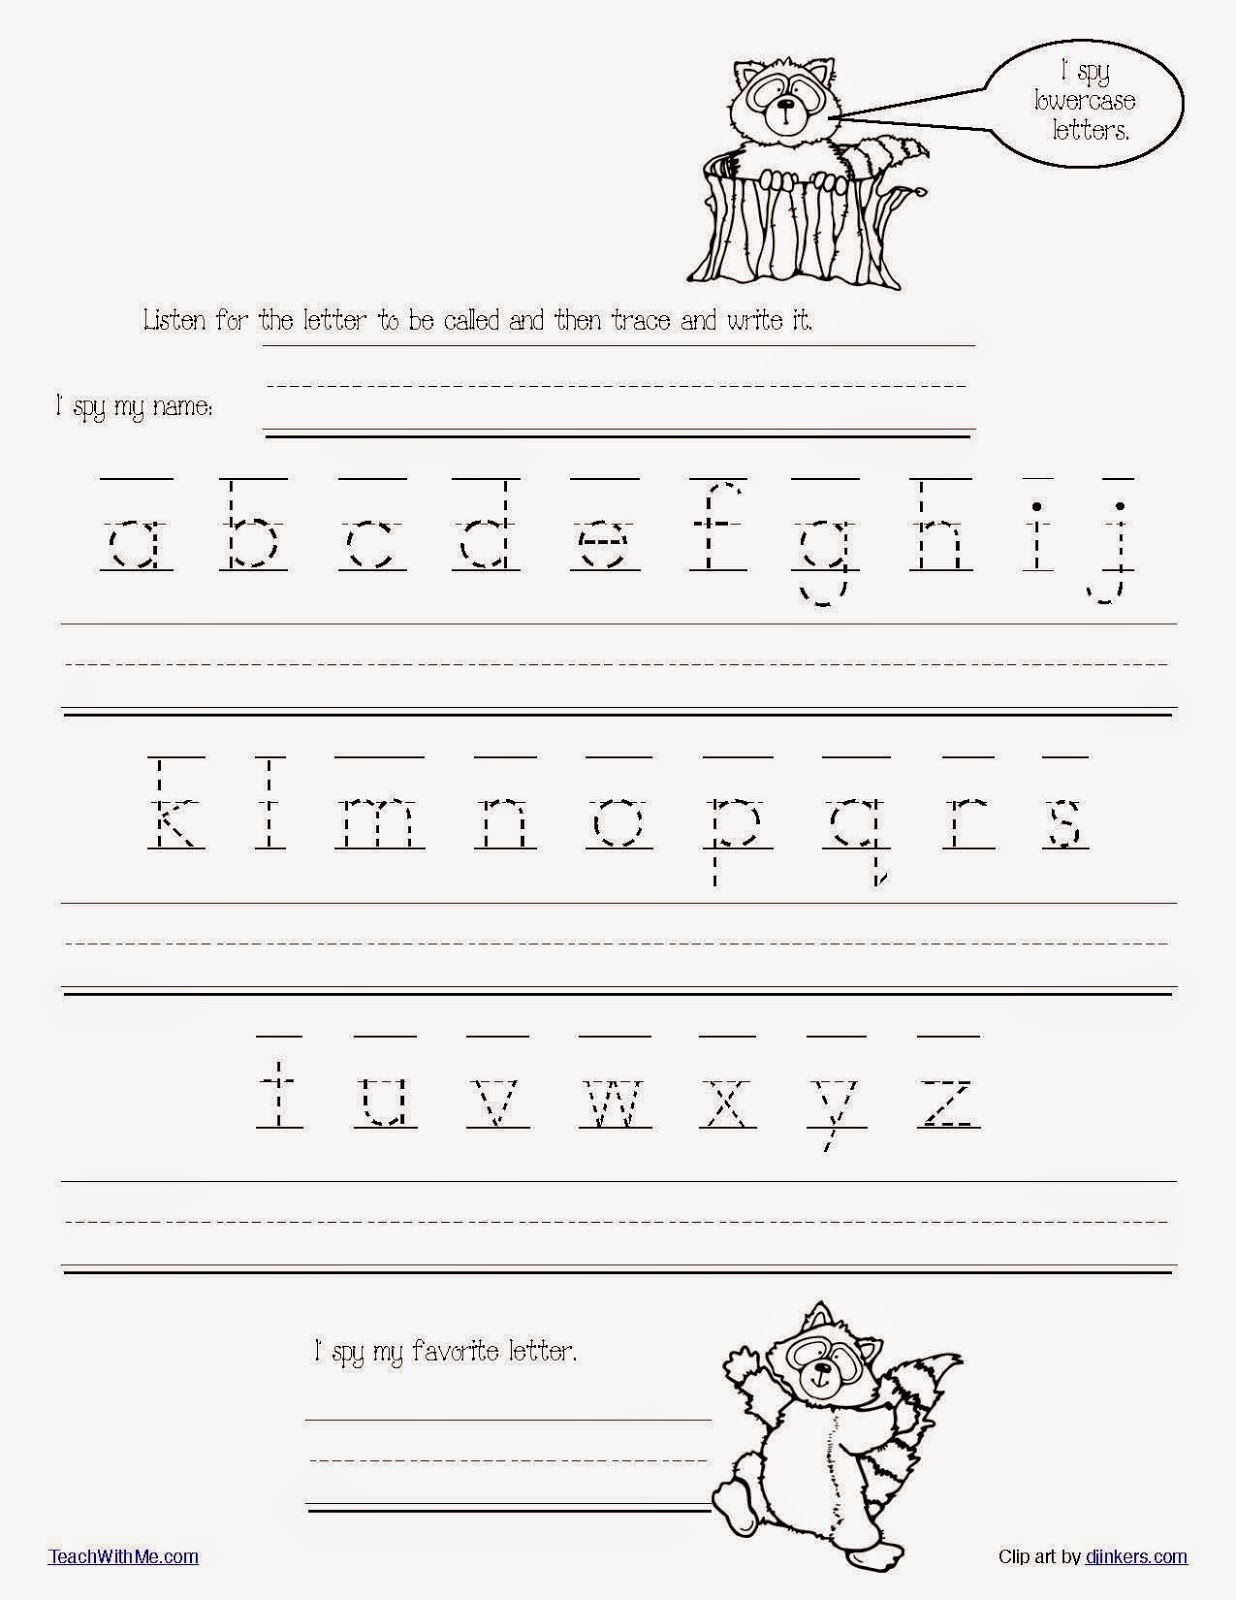 Classroom Freebies The Kissing Hand Alphabet Games Packet